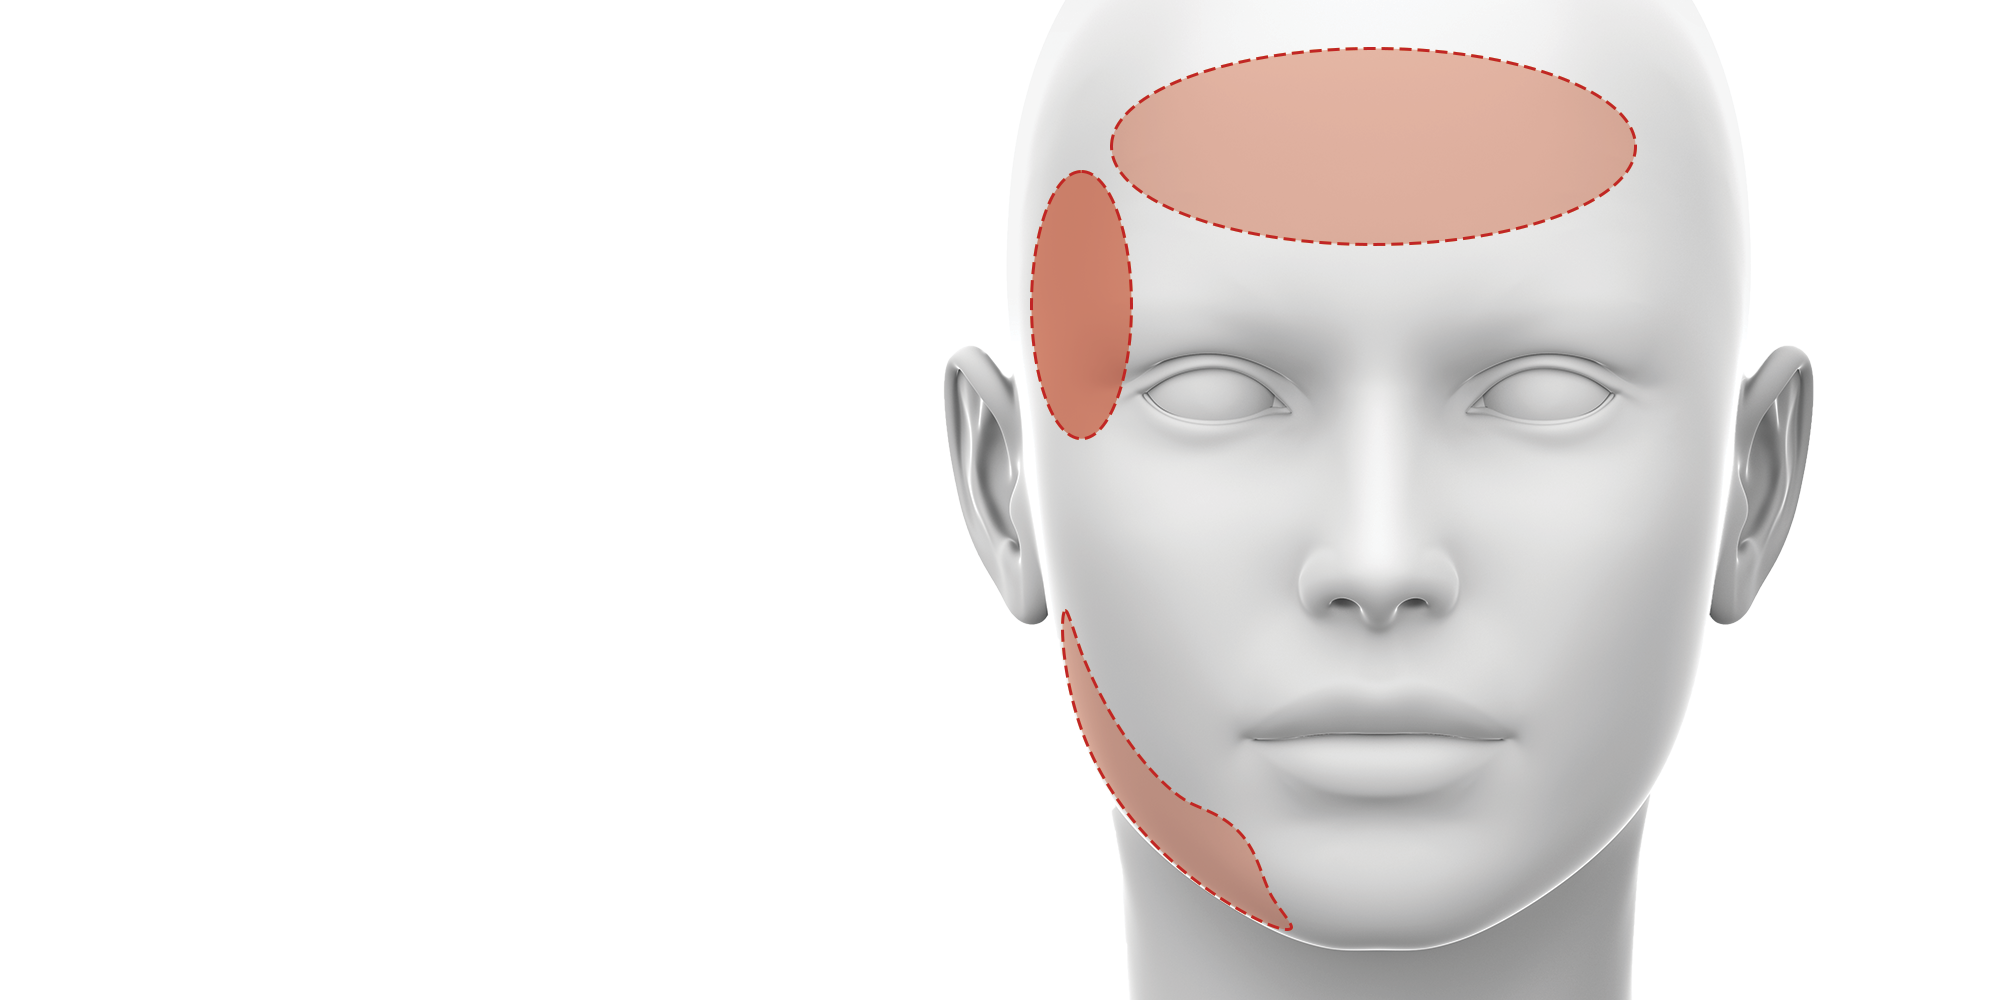 botulinum toxin for tmj related issues training